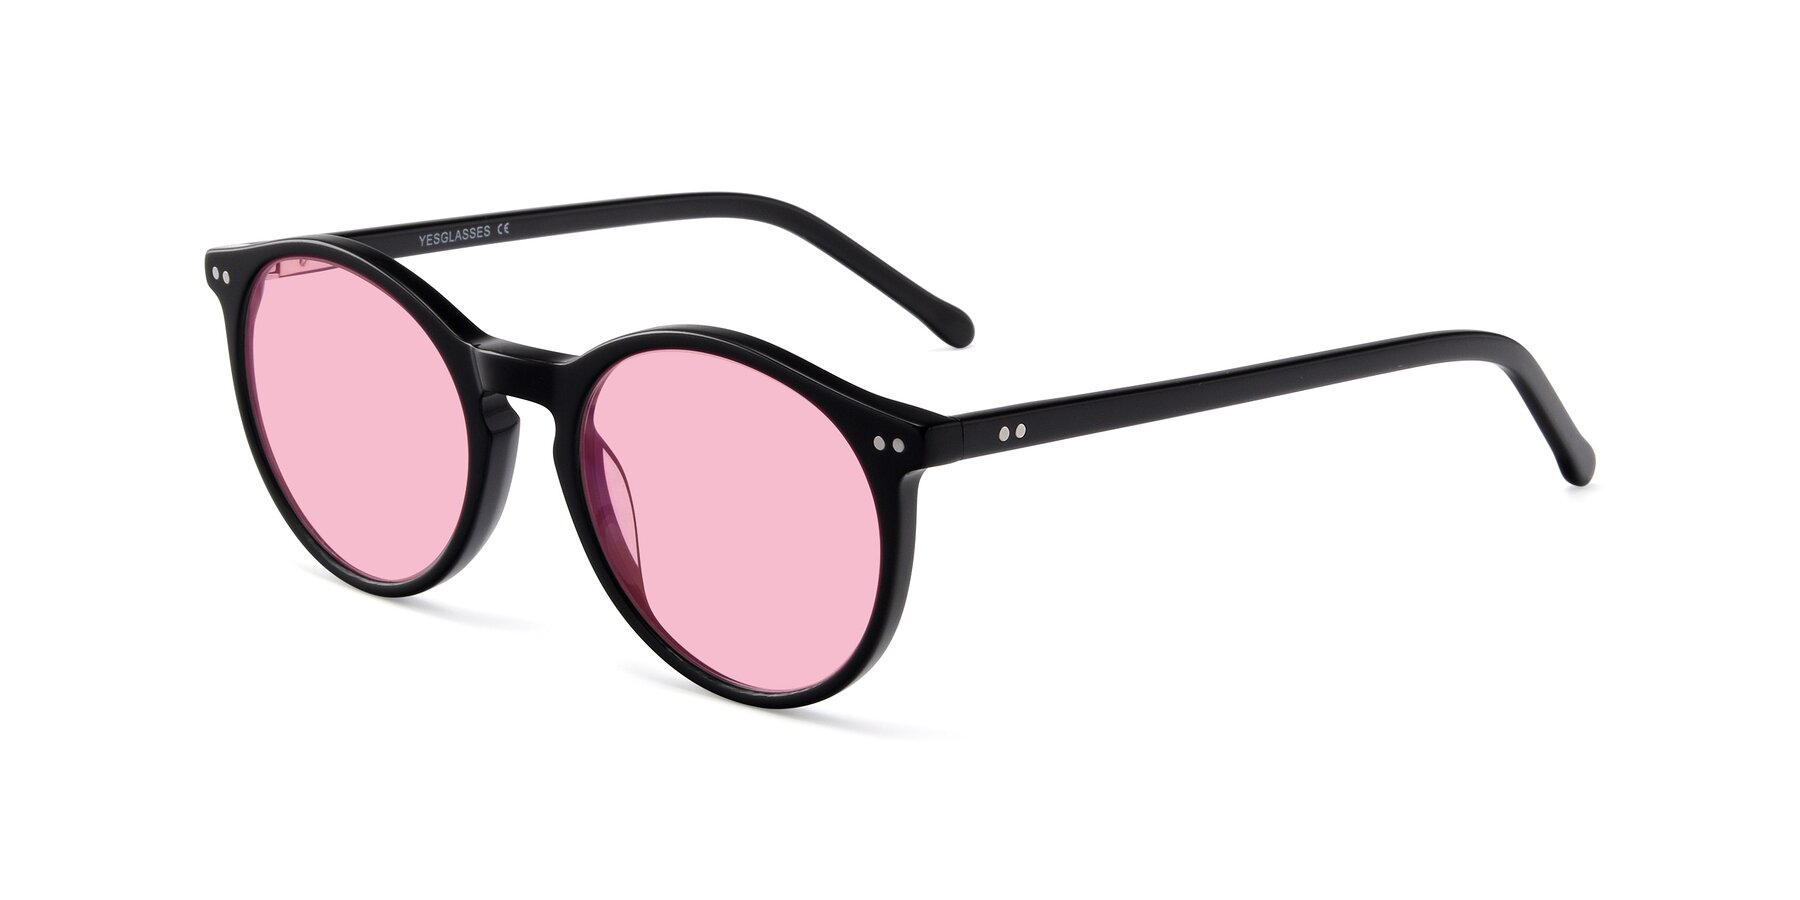 Angle of JS9026A in Black with Medium Pink Tinted Lenses